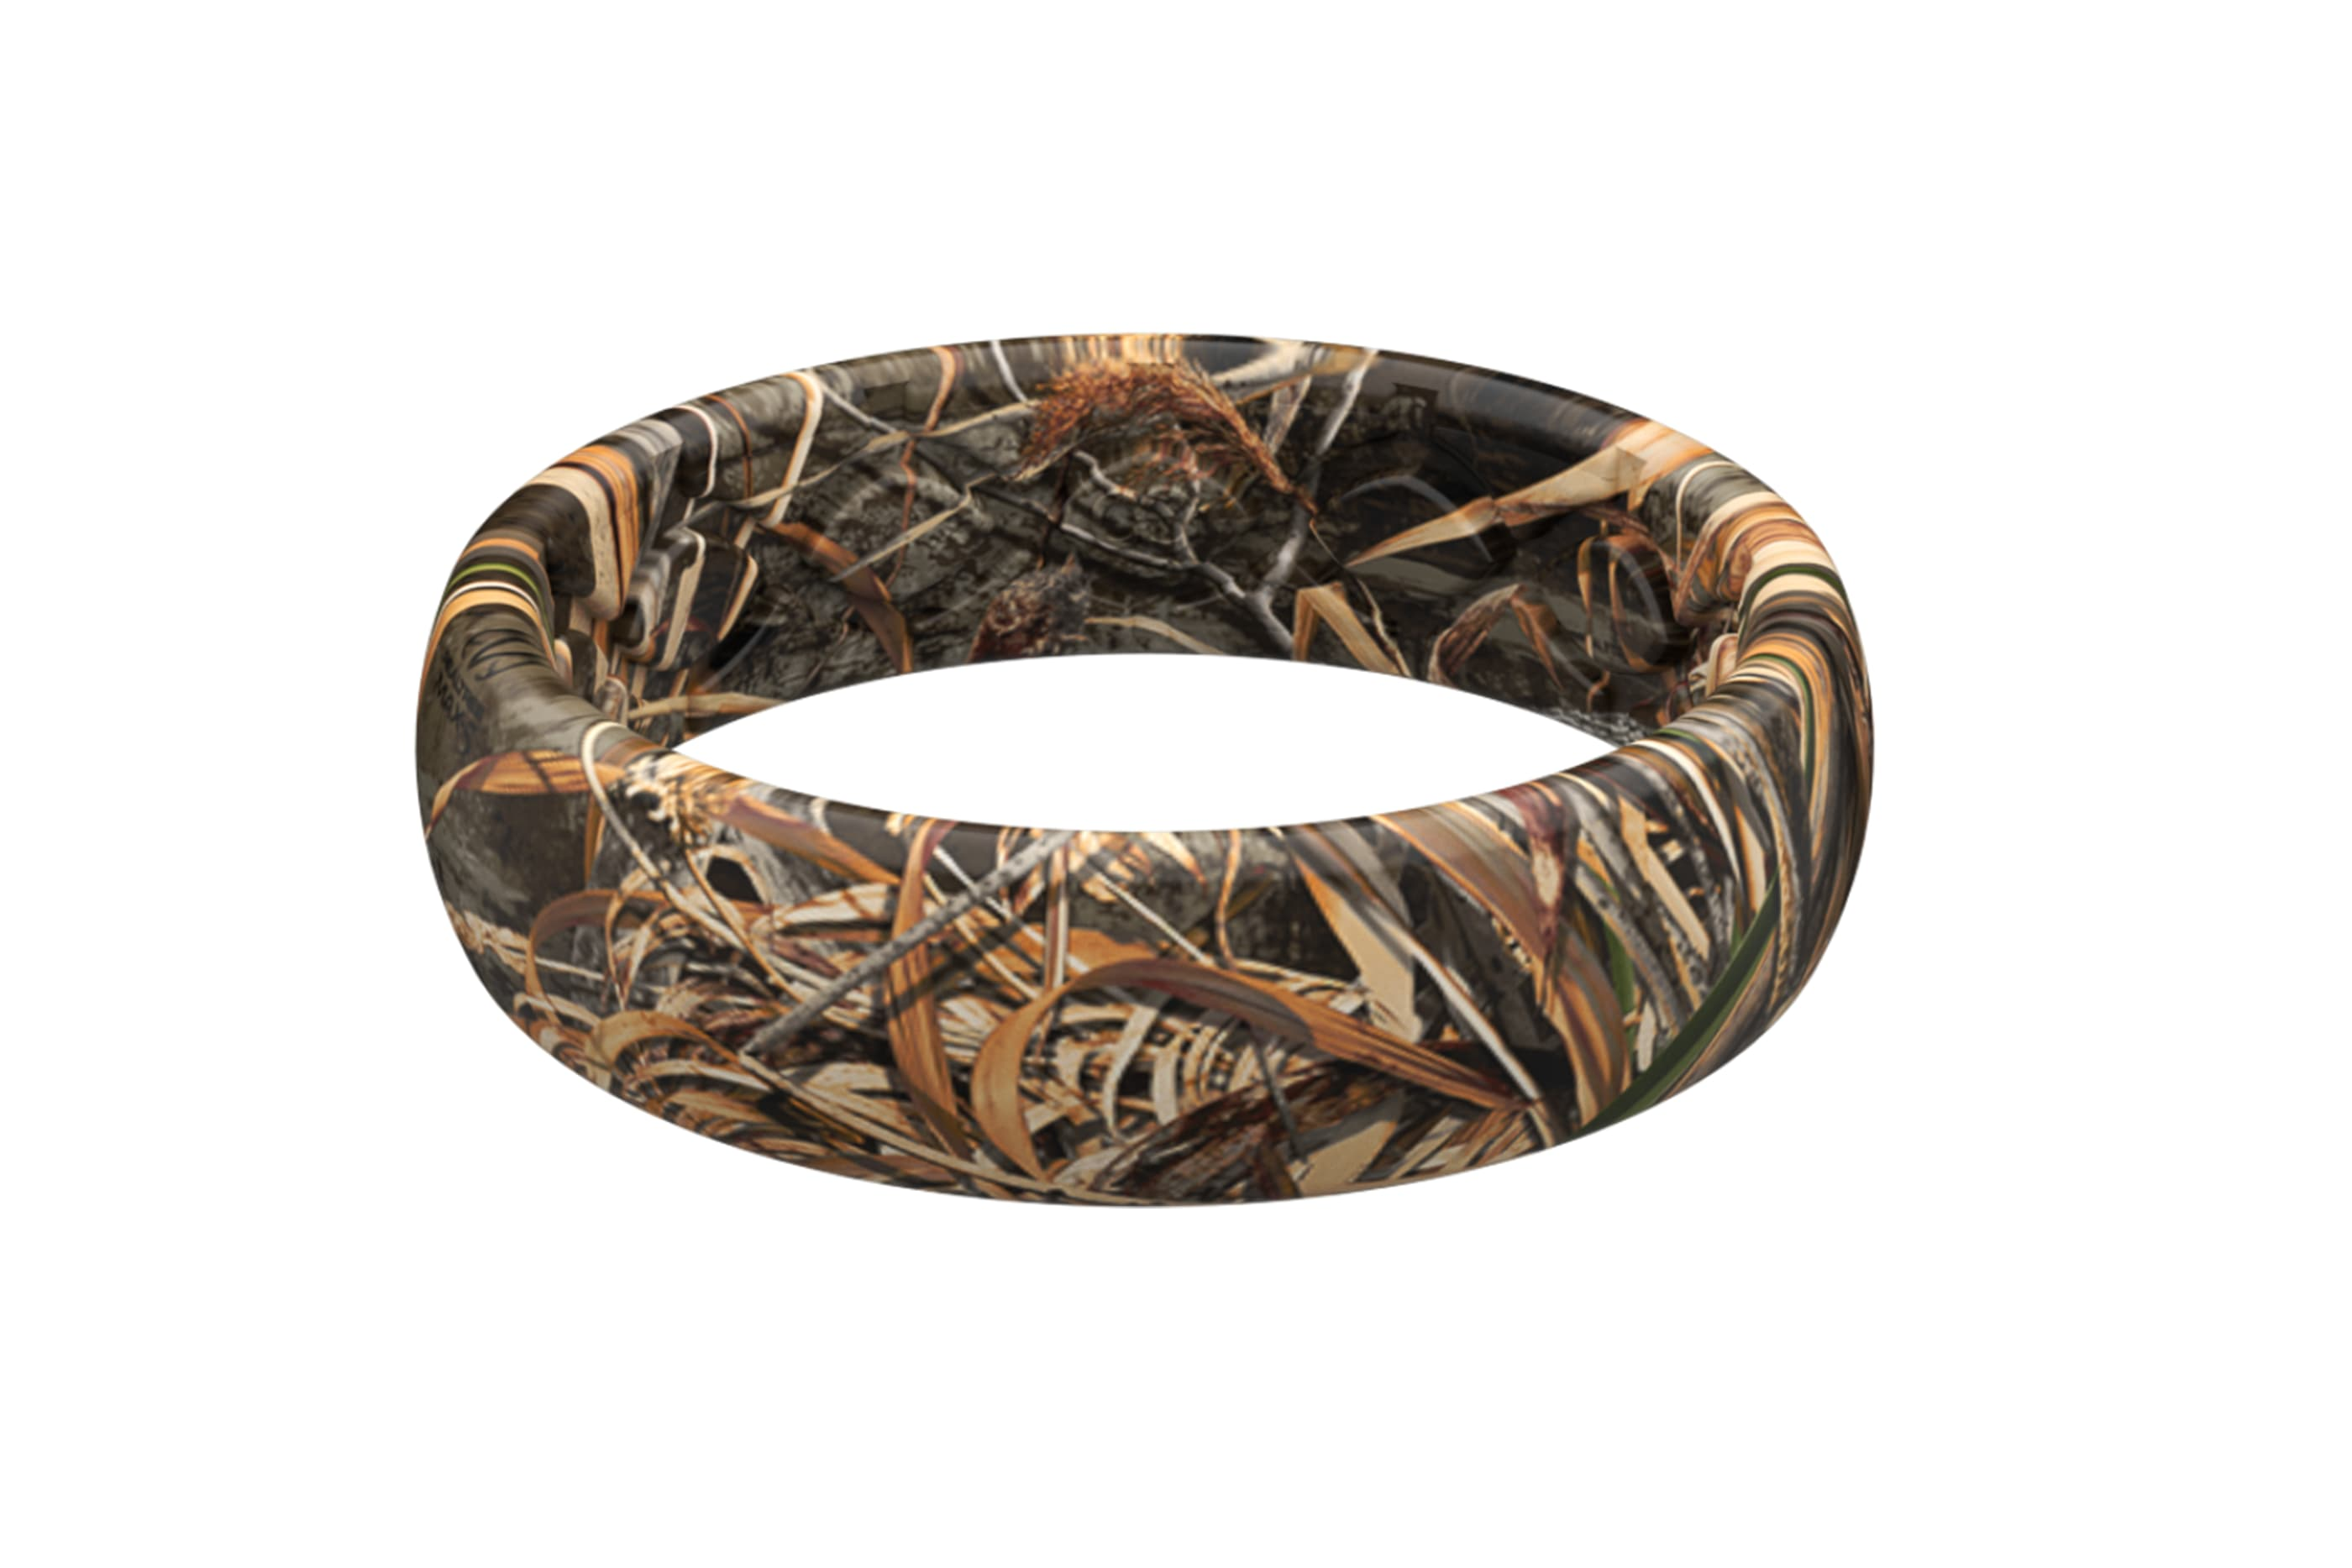 Realtree Max5 thin ring viewed from the side